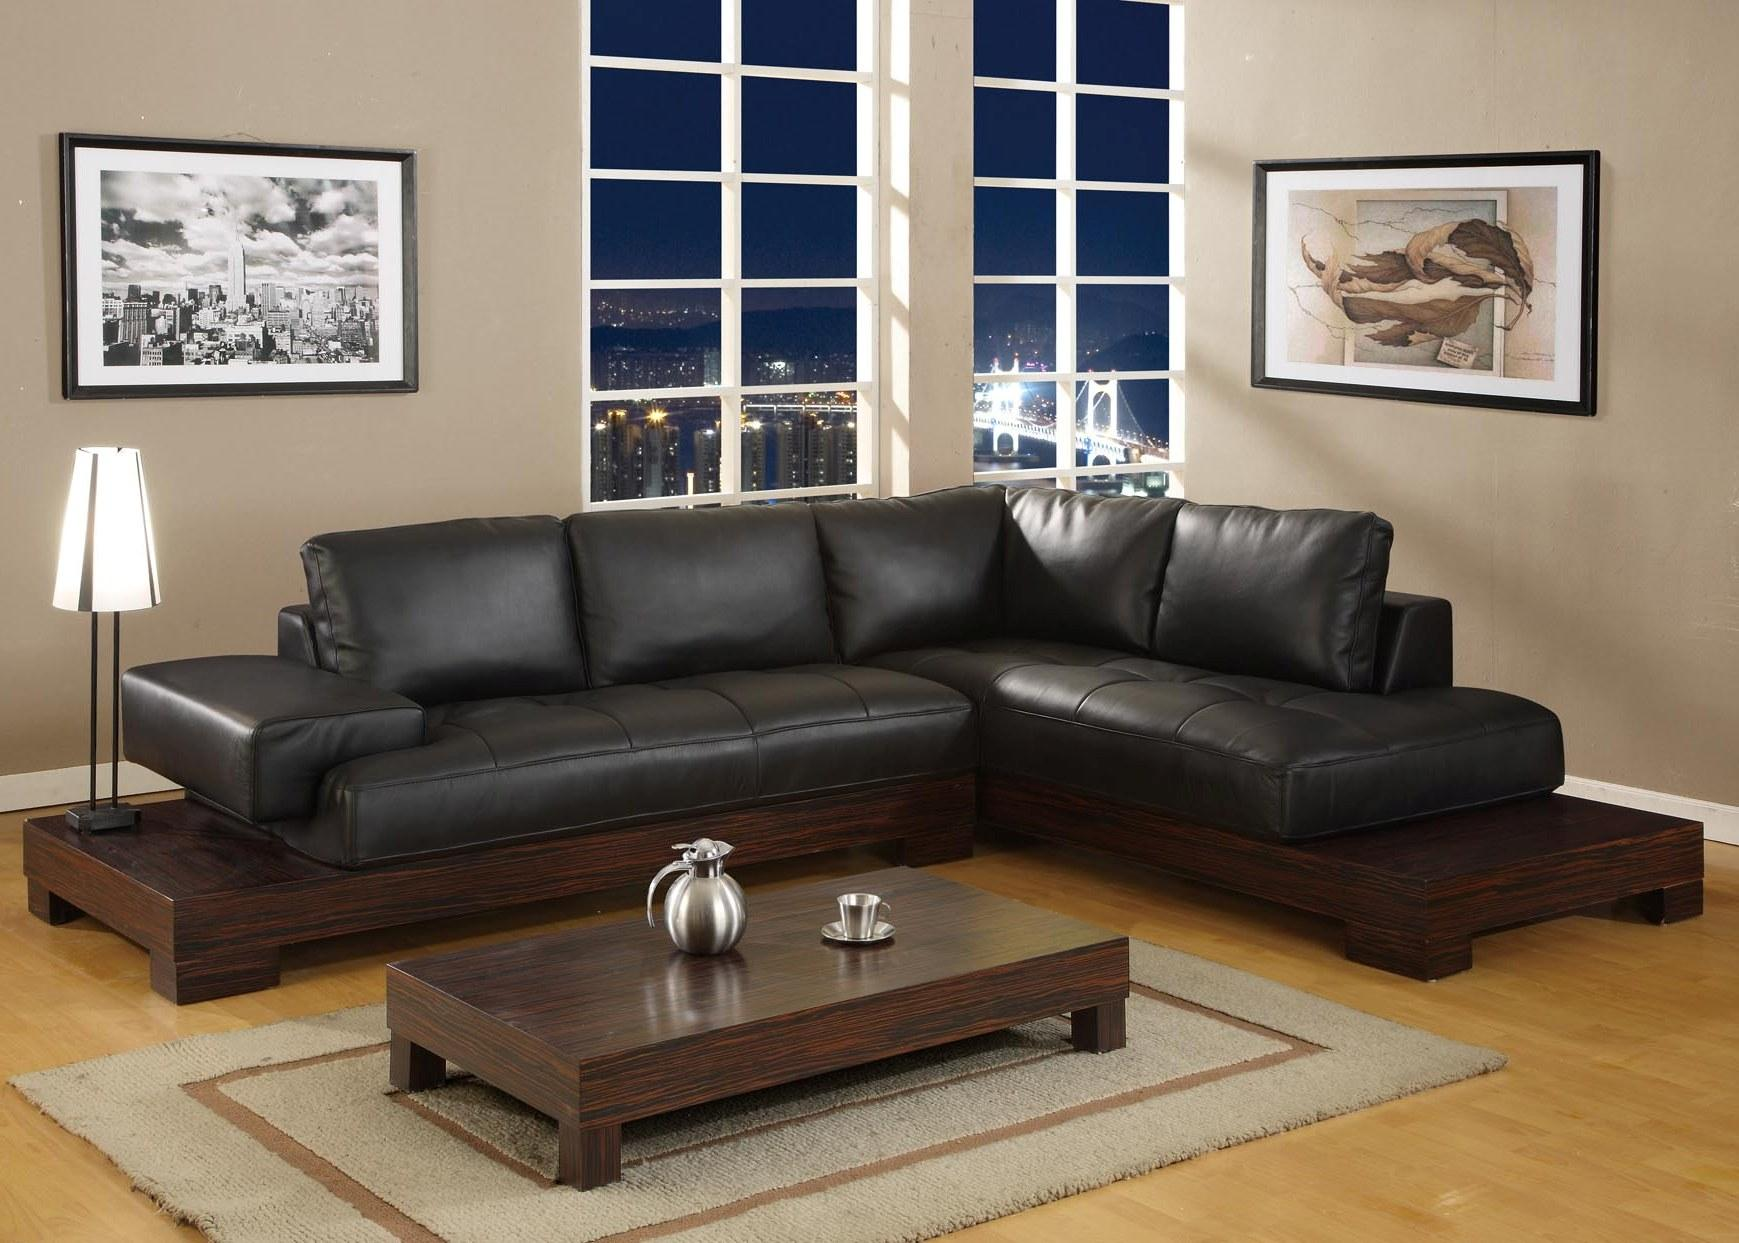 Black Furniture Living Room Ideas - HomesFeed